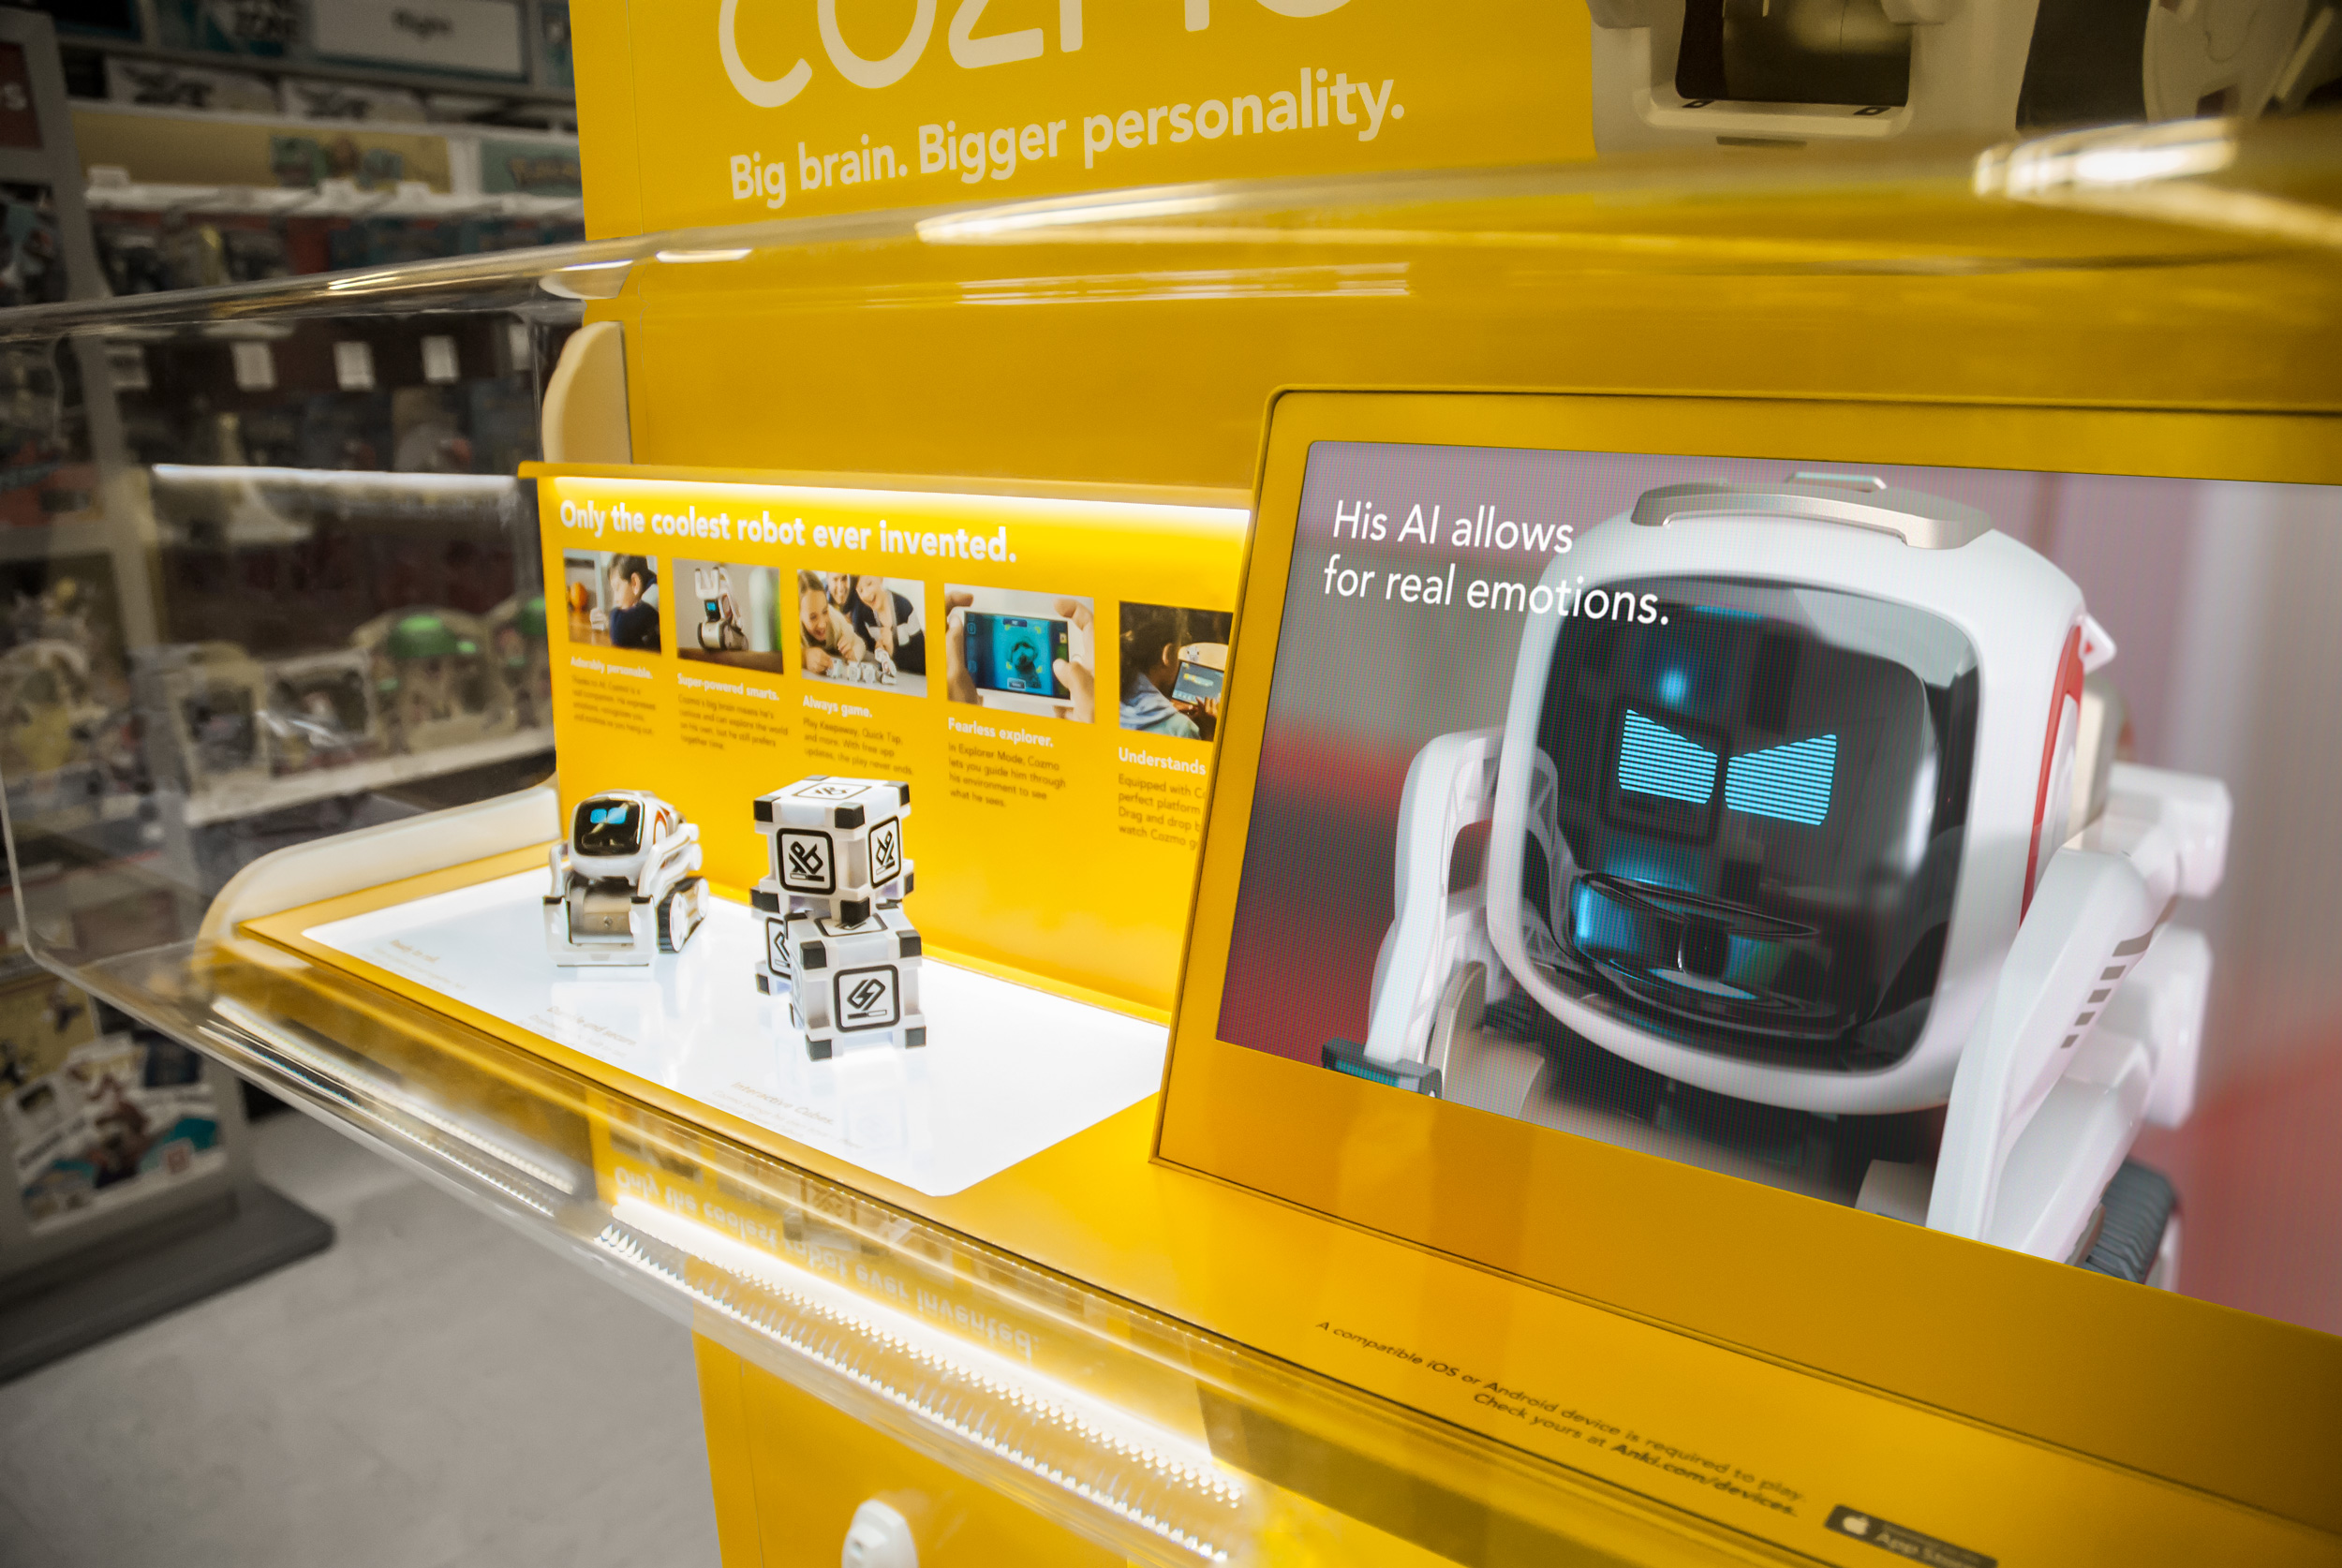 Cozmo the small AI robot on product display highlighting his emotional capabilities